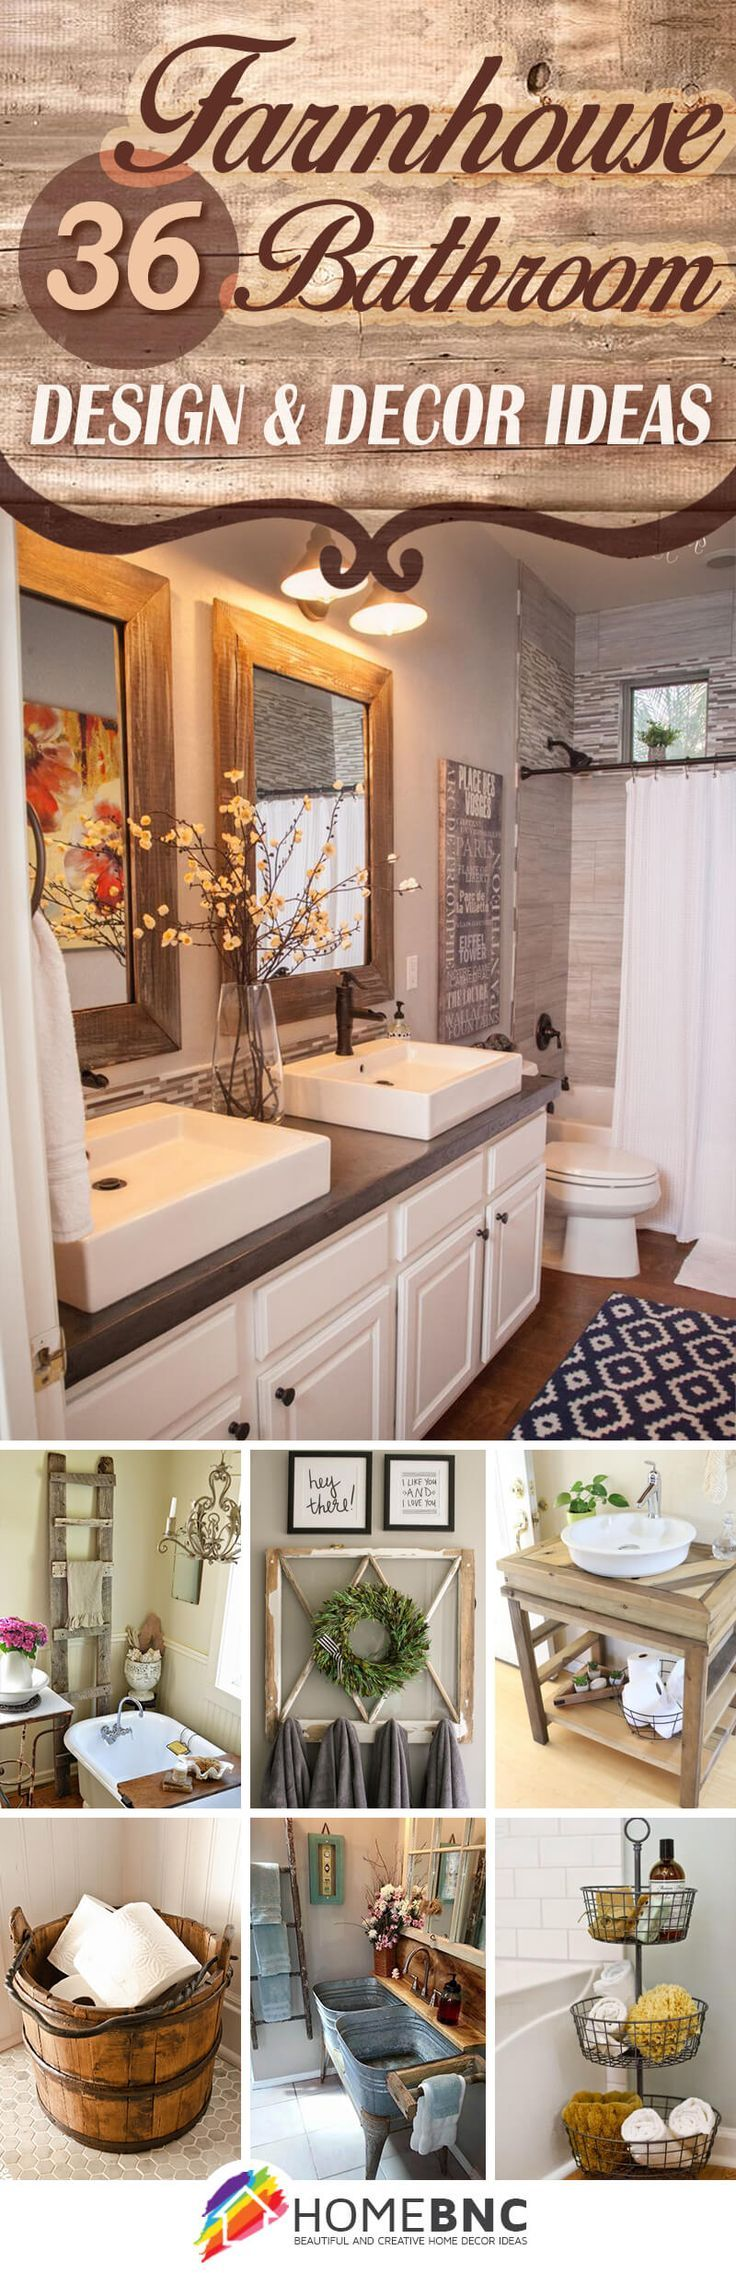 Rustic bathroom designs the key is to be bold original and - 36 Beautiful Farmhouse Bathroom Design And Decor Ideas You Will Go Crazy For